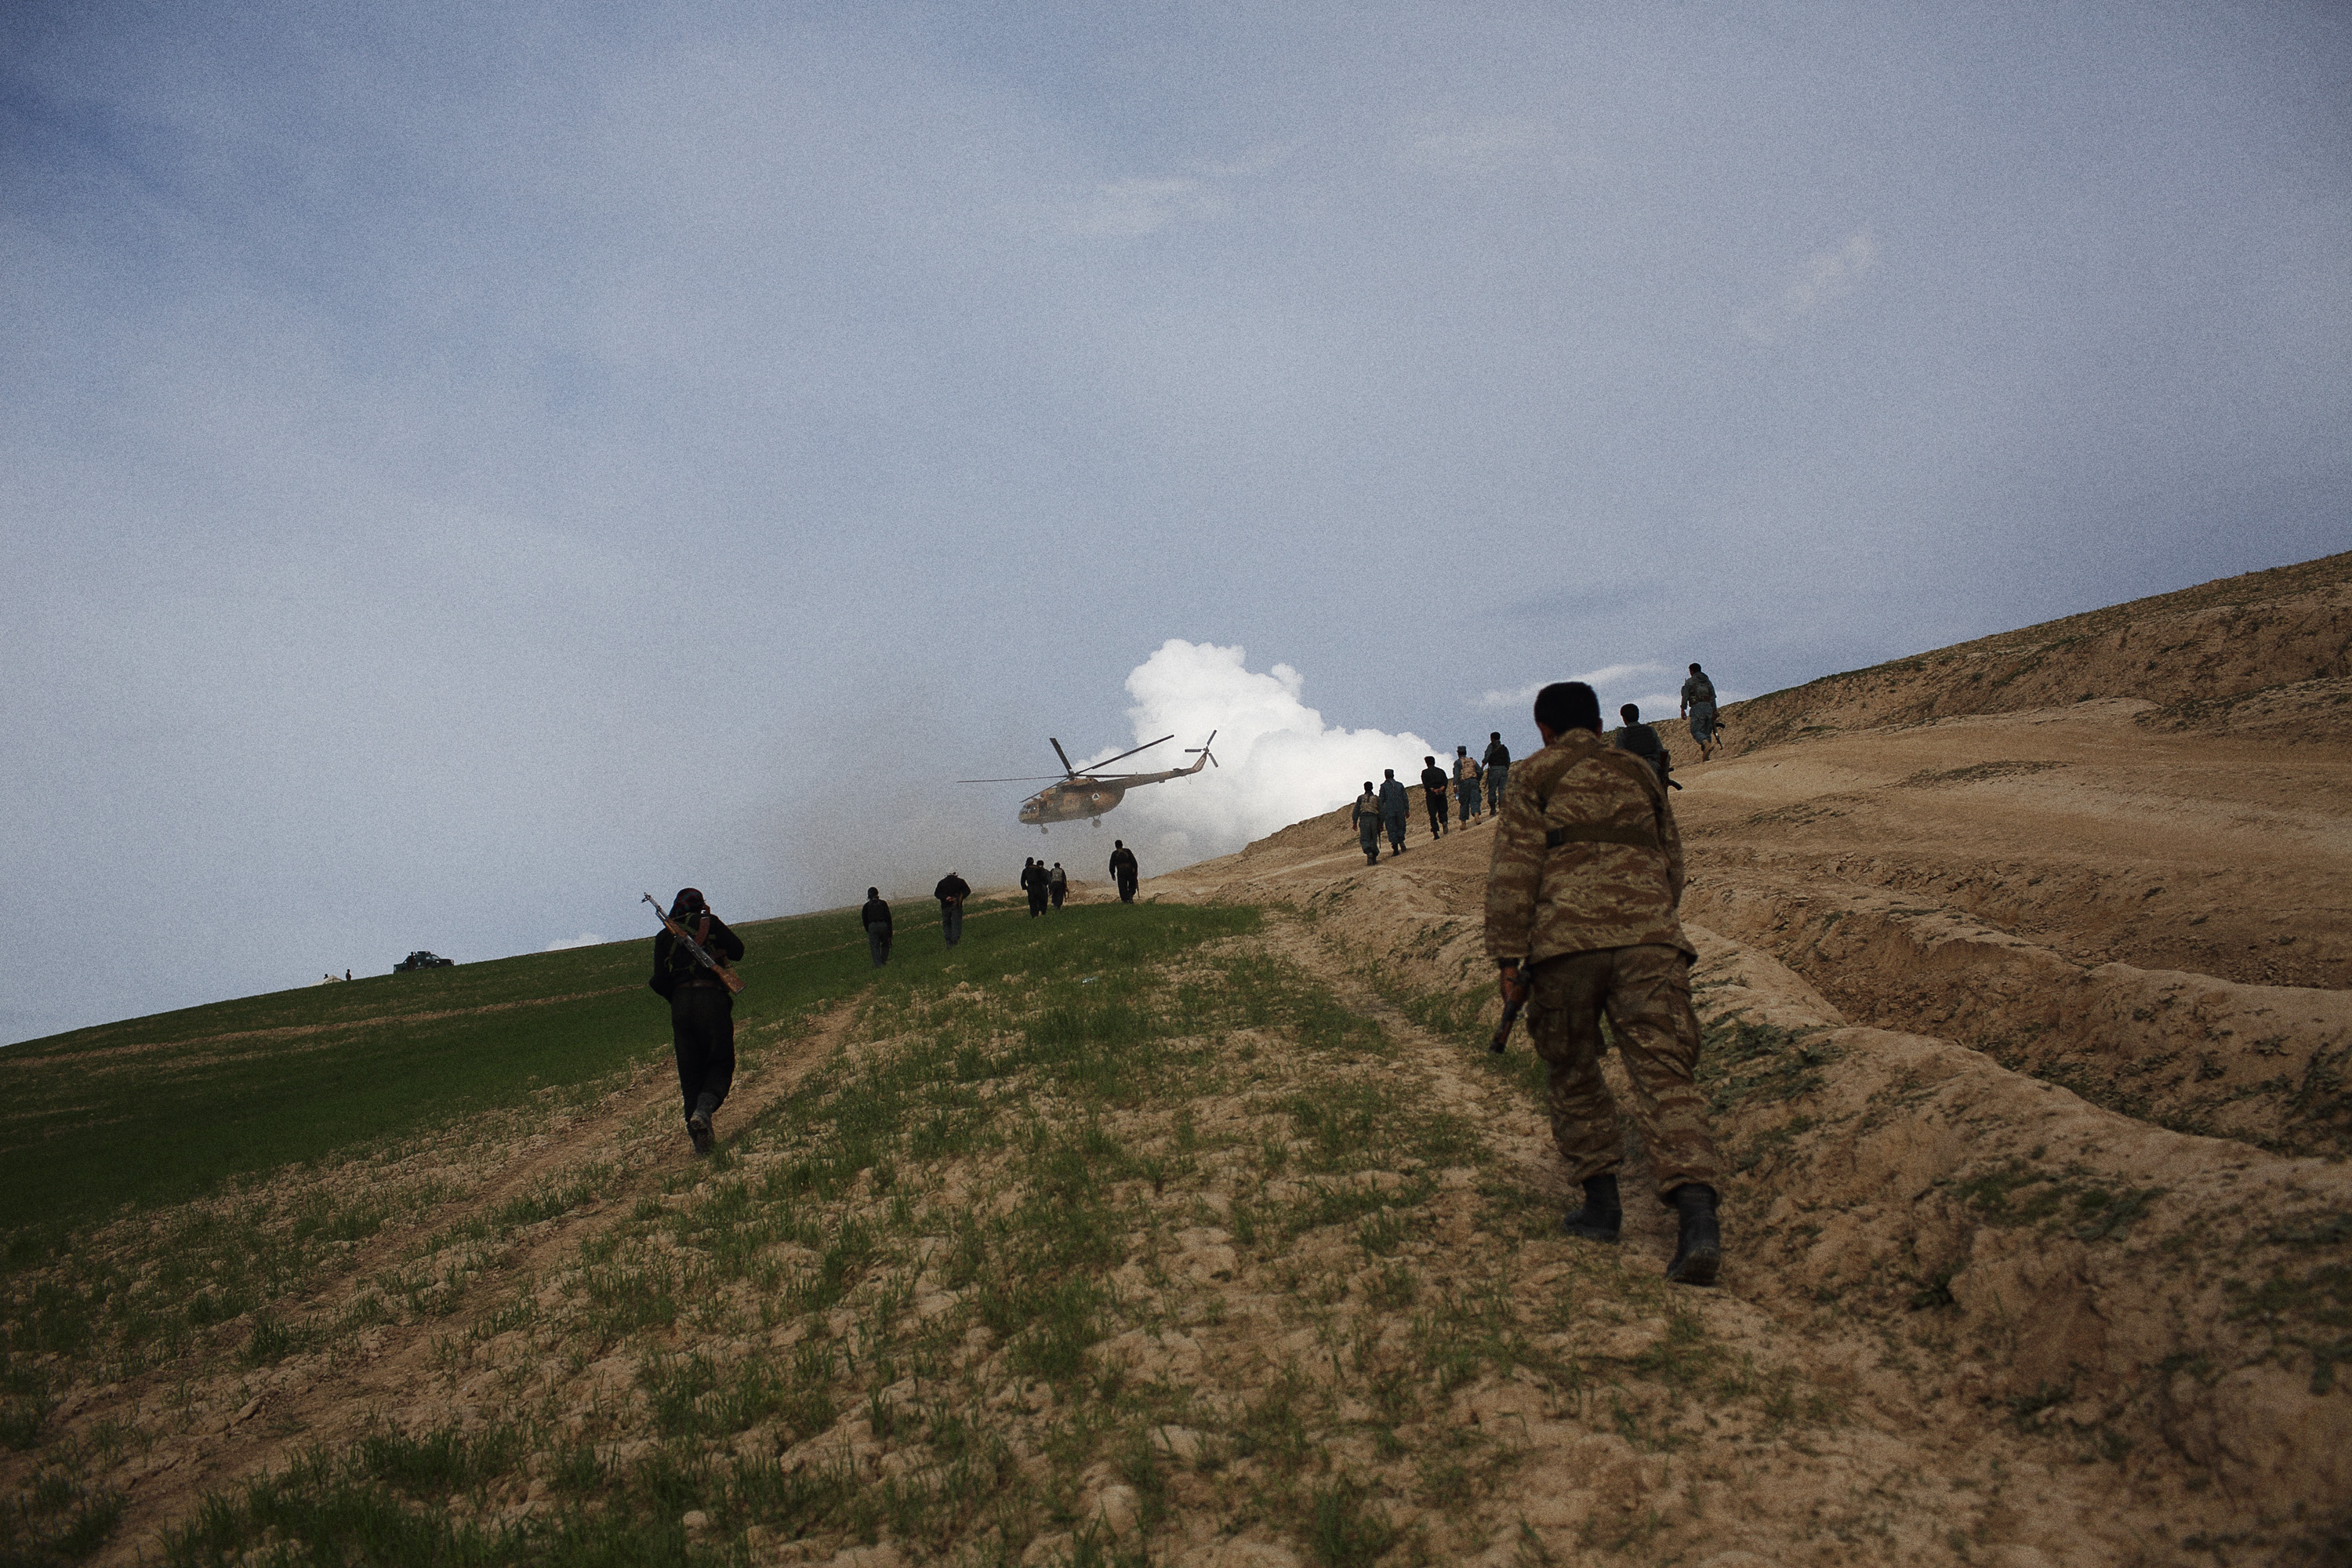 Police climb a hill to guard a helicopter aid delivery, May 6, 2014.